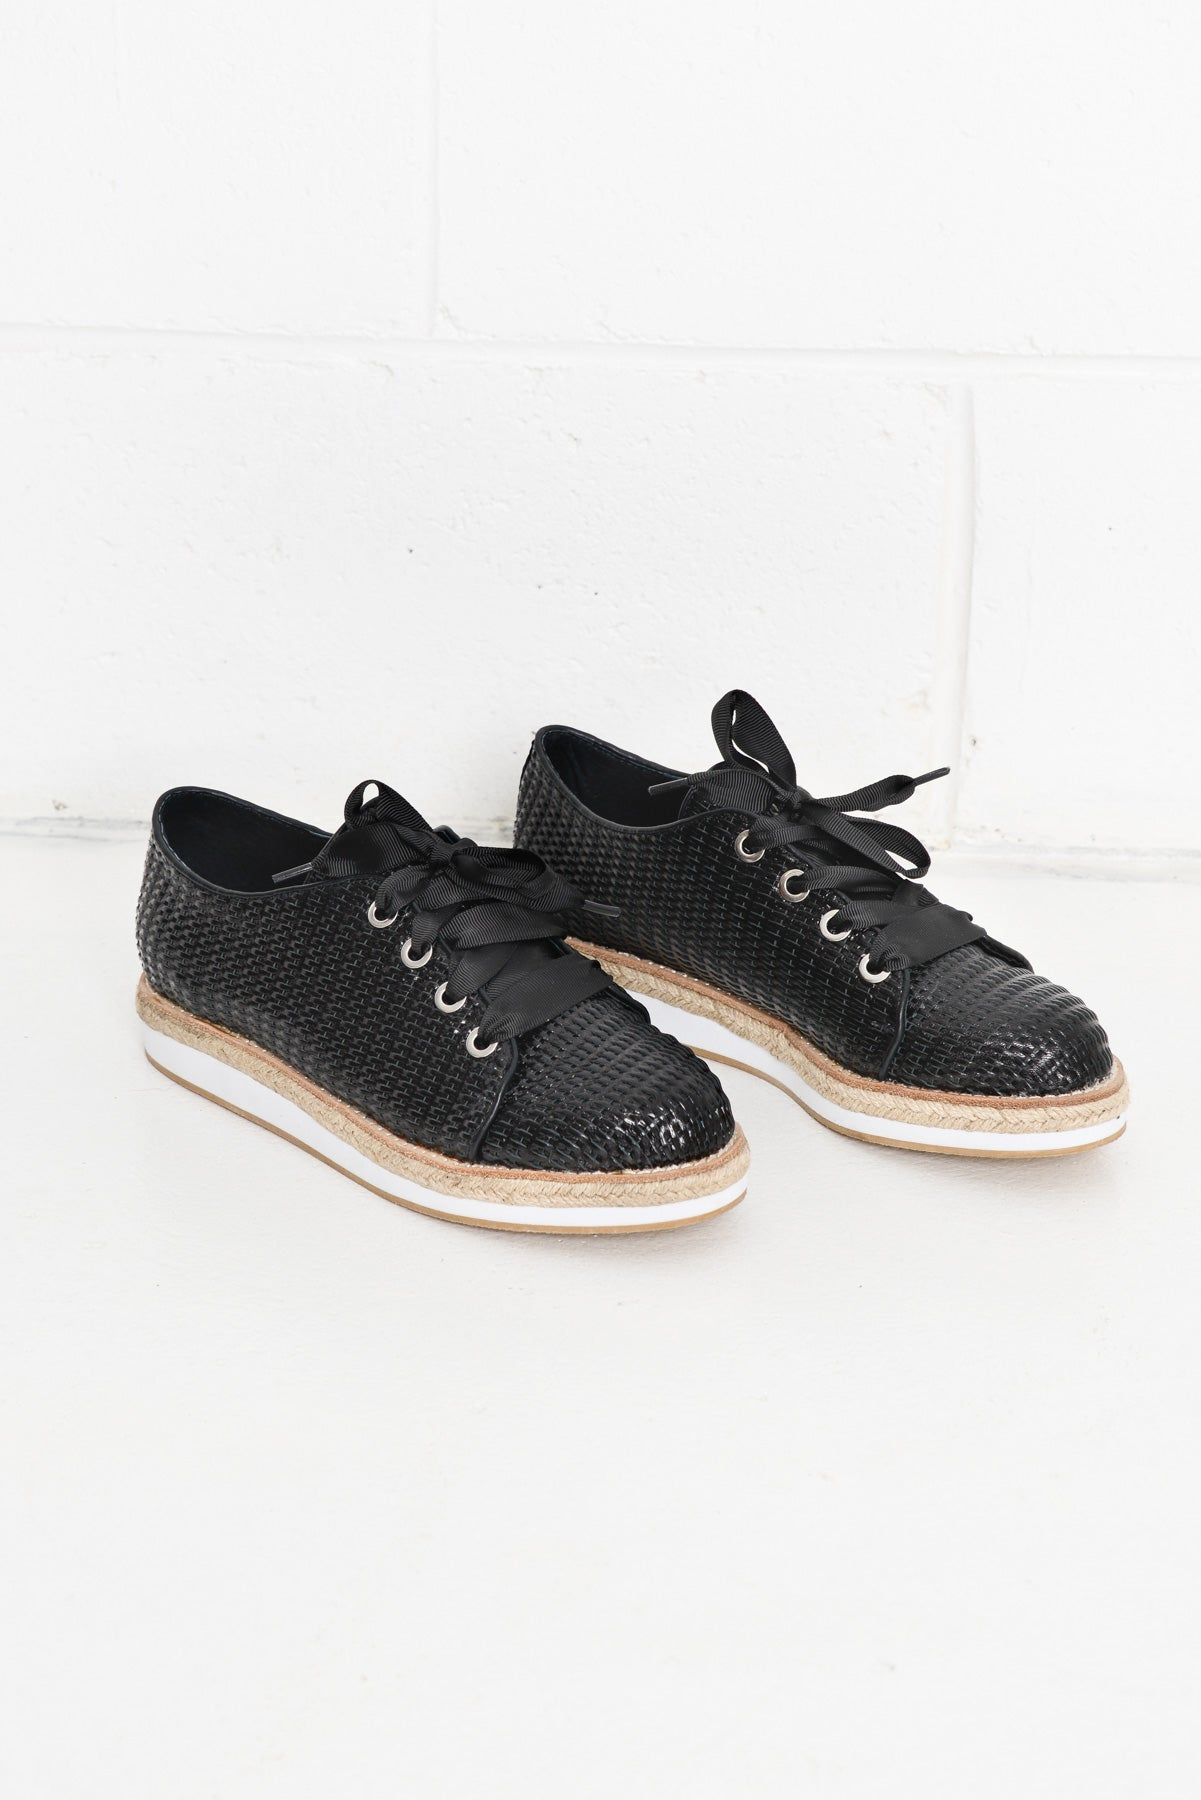 Novak Black Woven Leather Shoes - Blue Bungalow